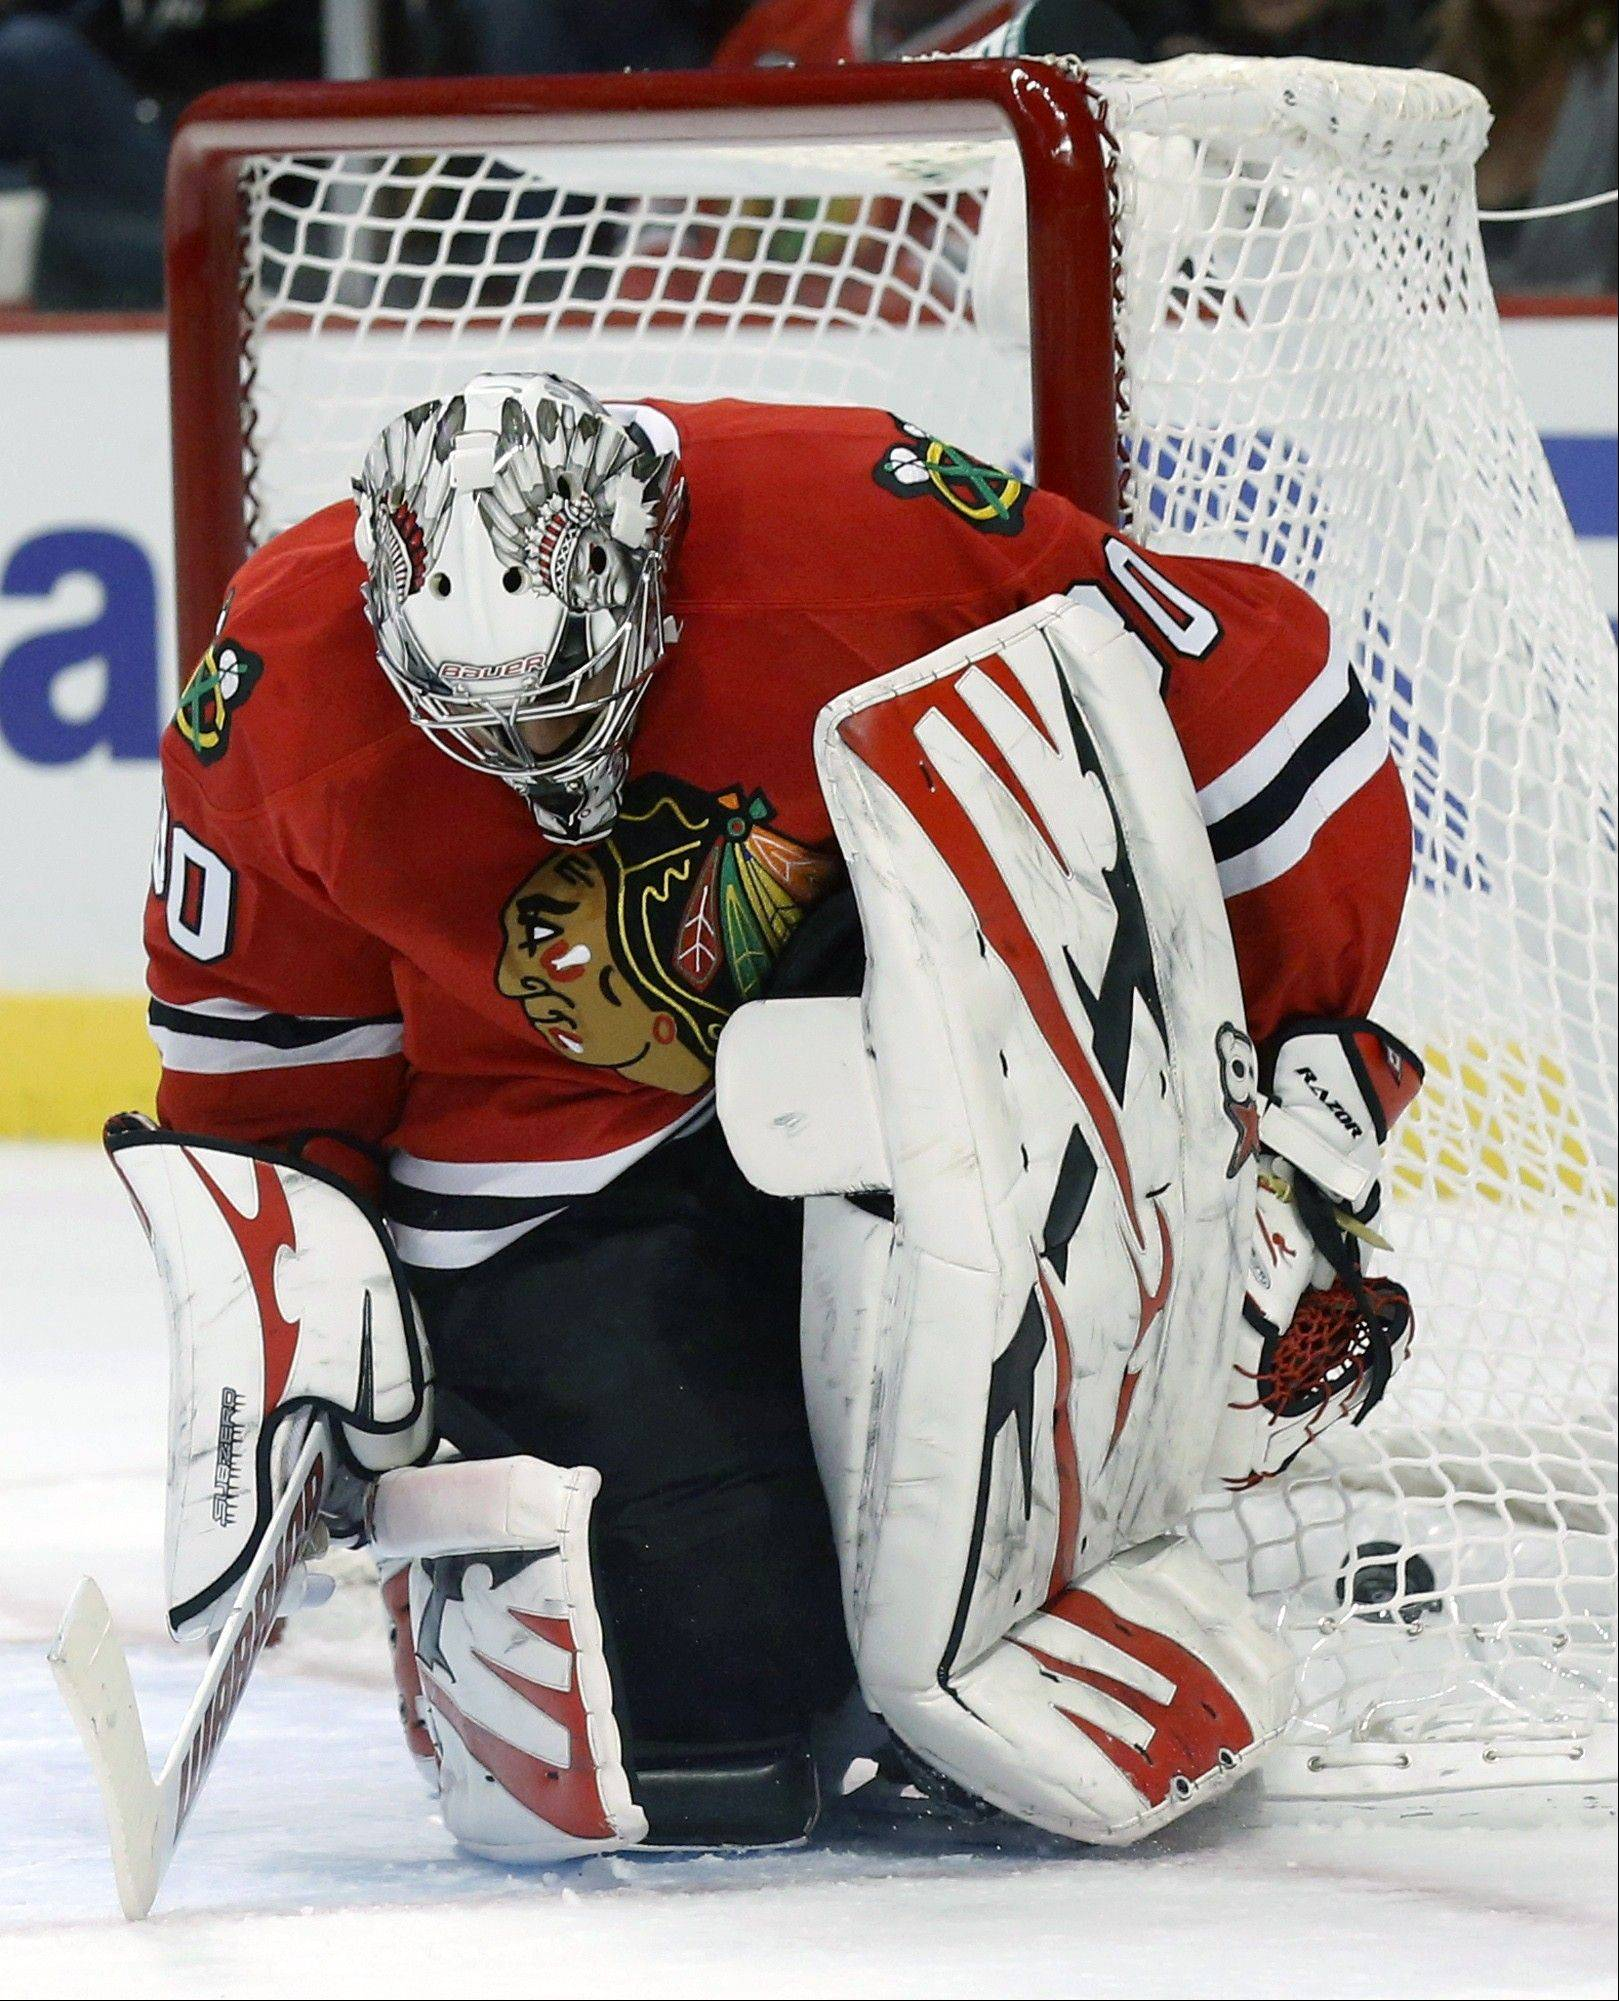 Chicago Blackhawks goalie Ray Emery looks down after giving up a goal to Vancouver Canucks' Daniel Sedin during the first period.